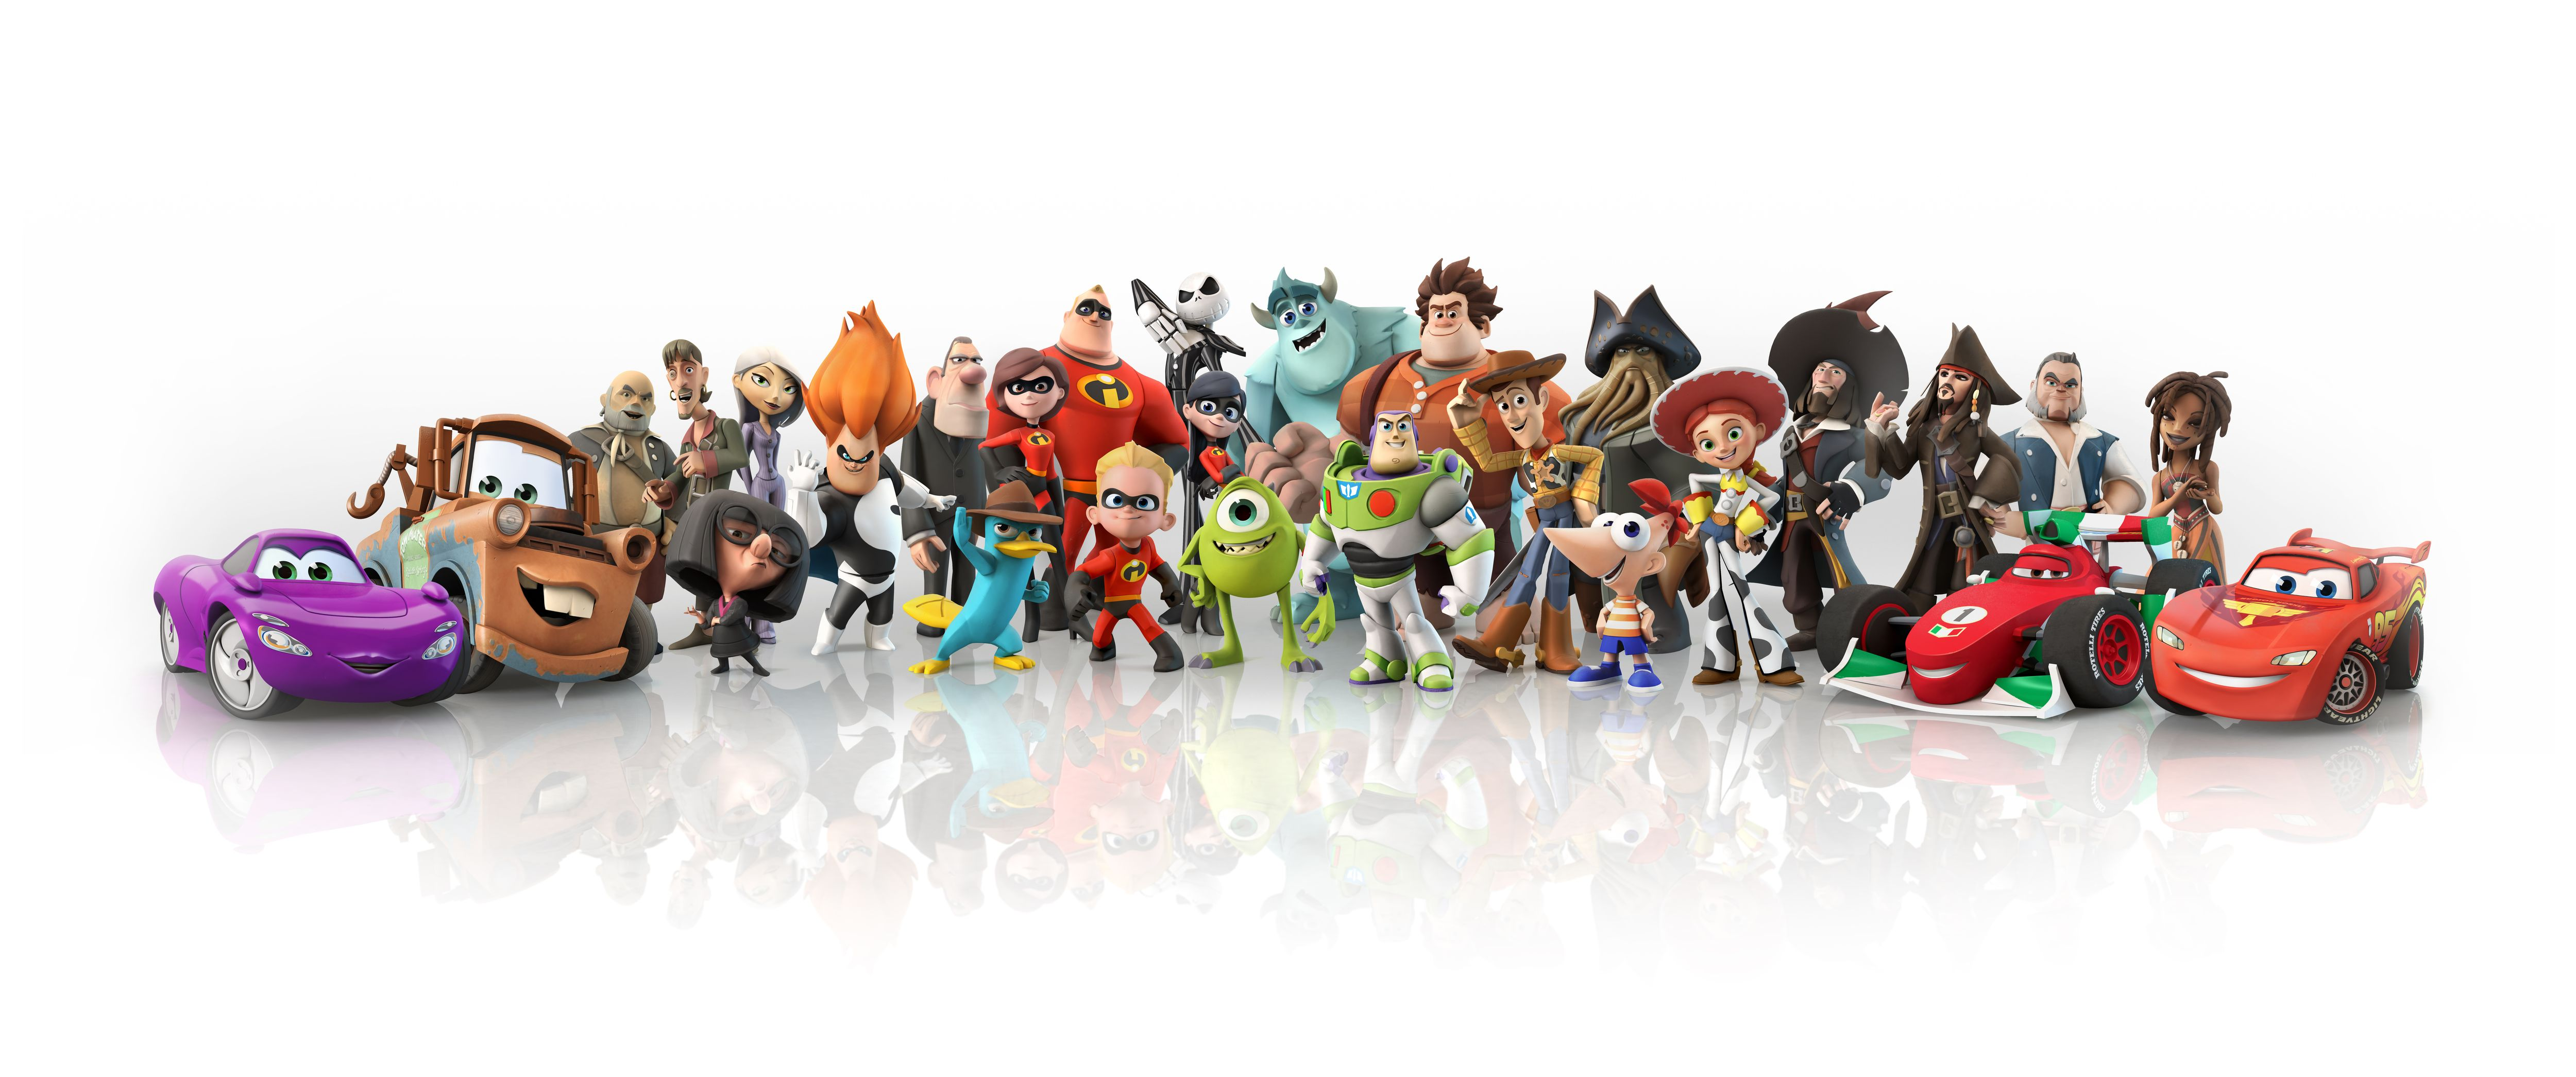 1000 Images About Pixar Animations On Pinterest Pixar